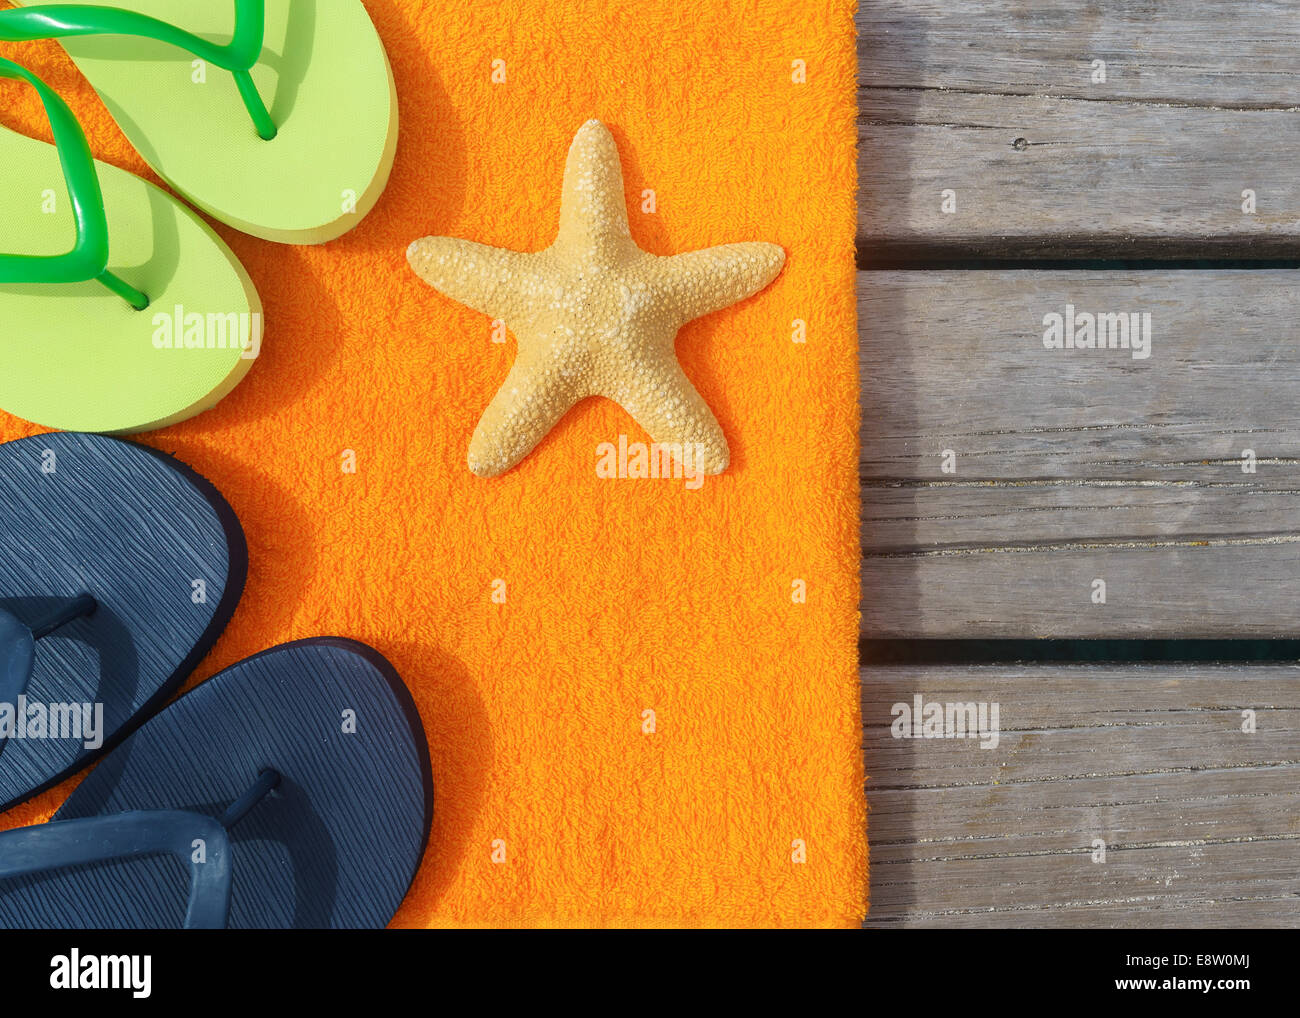 94cd47255 Beach Slippers Stock Photos   Beach Slippers Stock Images - Alamy